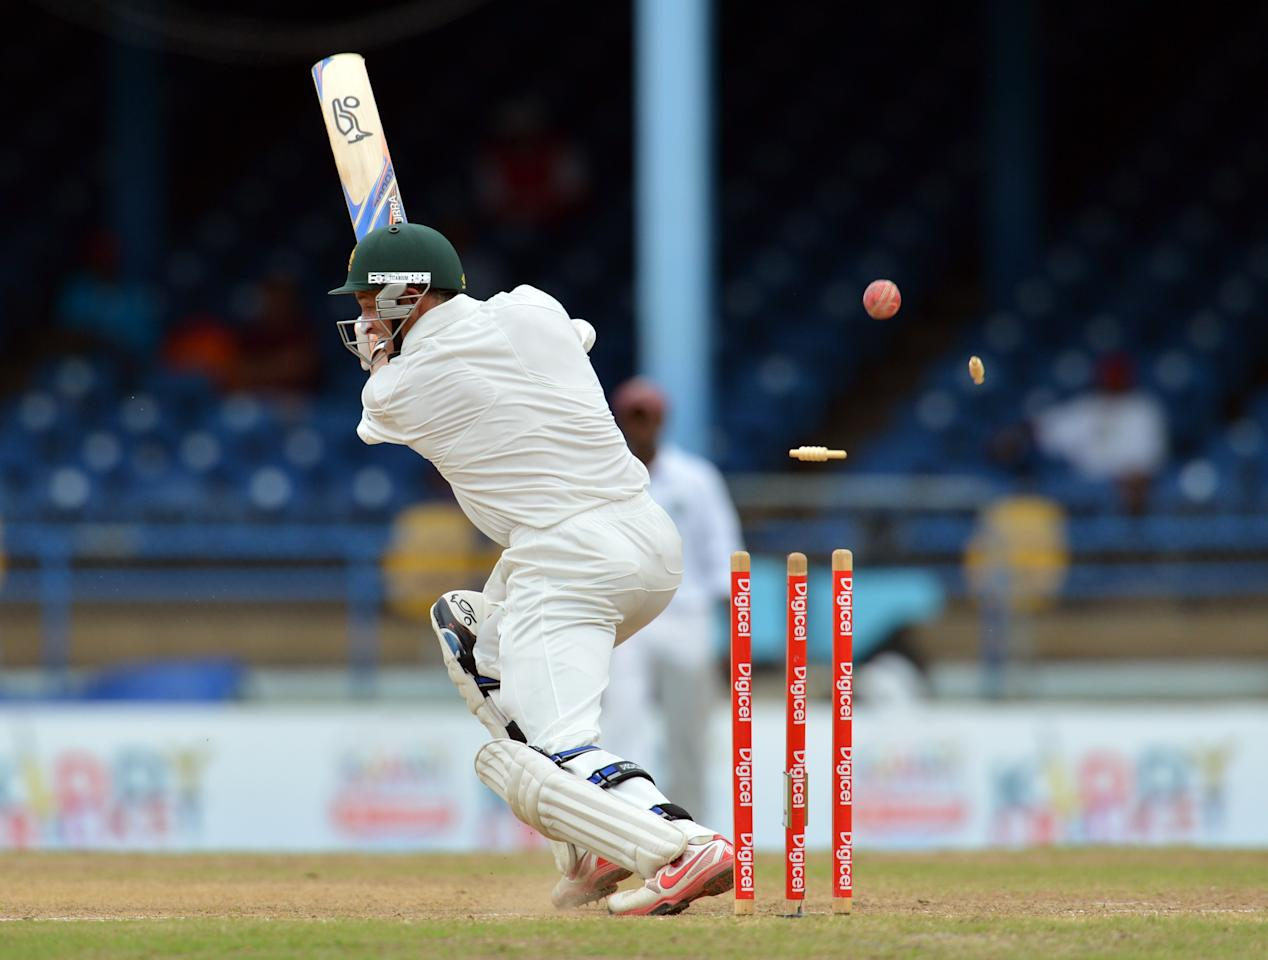 Australian batsman Michael Hussey is bowled out by West Indies Kemar Roach during the final day of the second-of-three Test matches between Australia and West Indies April19, 2012 at Queen's Park Oval in Port of Spain, Trinidad.